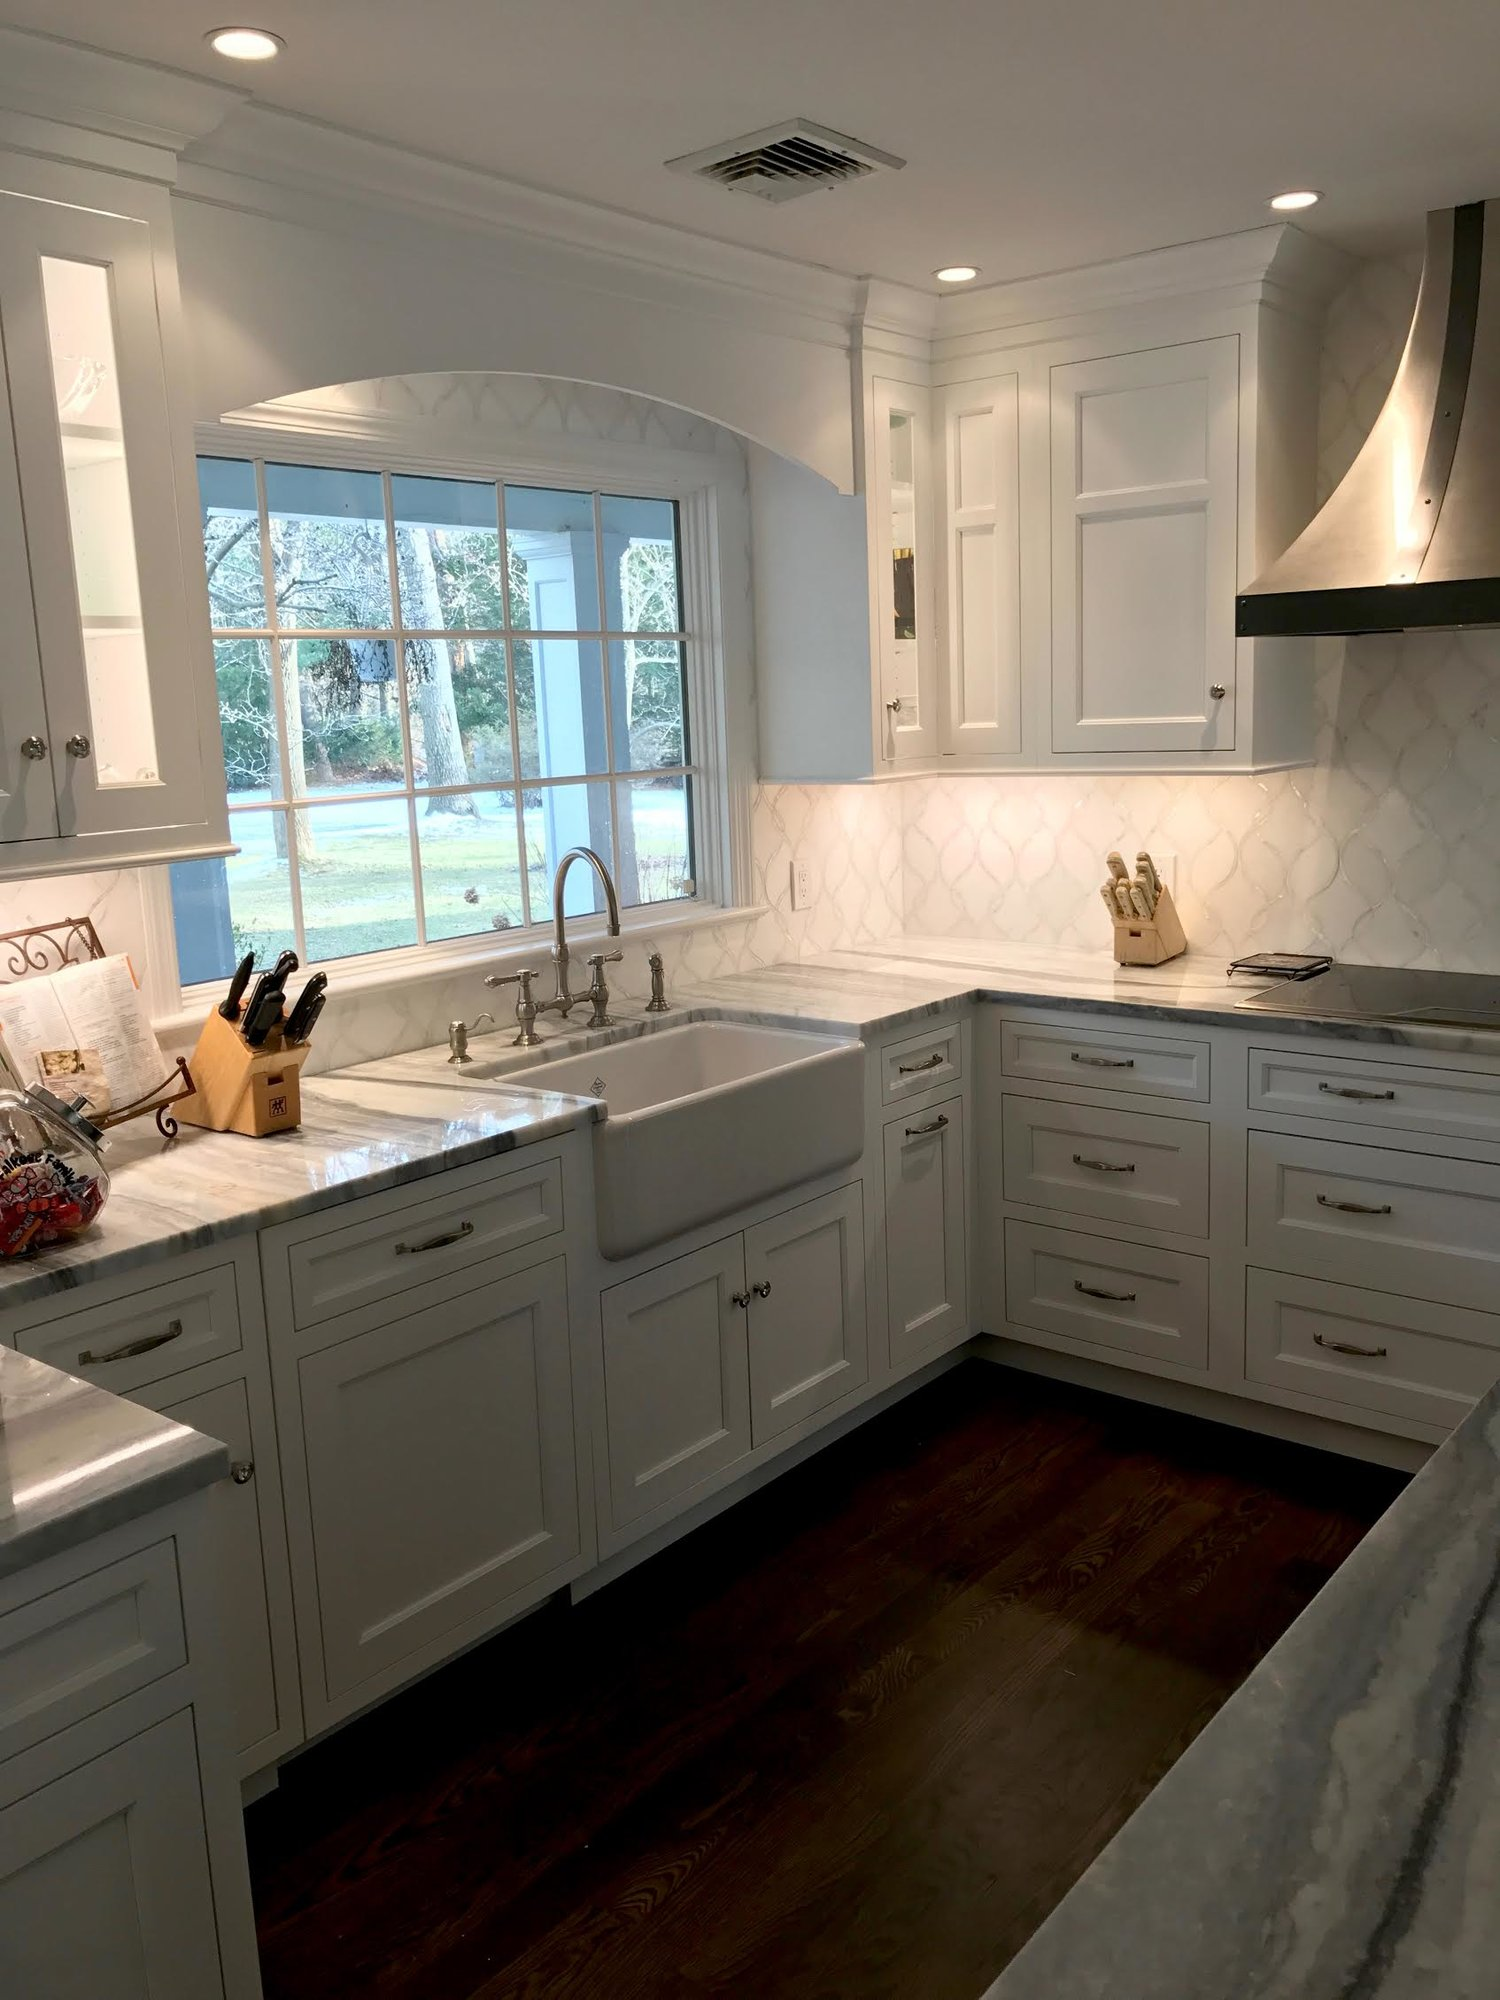 Elite Kitchens And Bathrooms 2. Spectacular Rutt Kitchen In Great Neck Ny